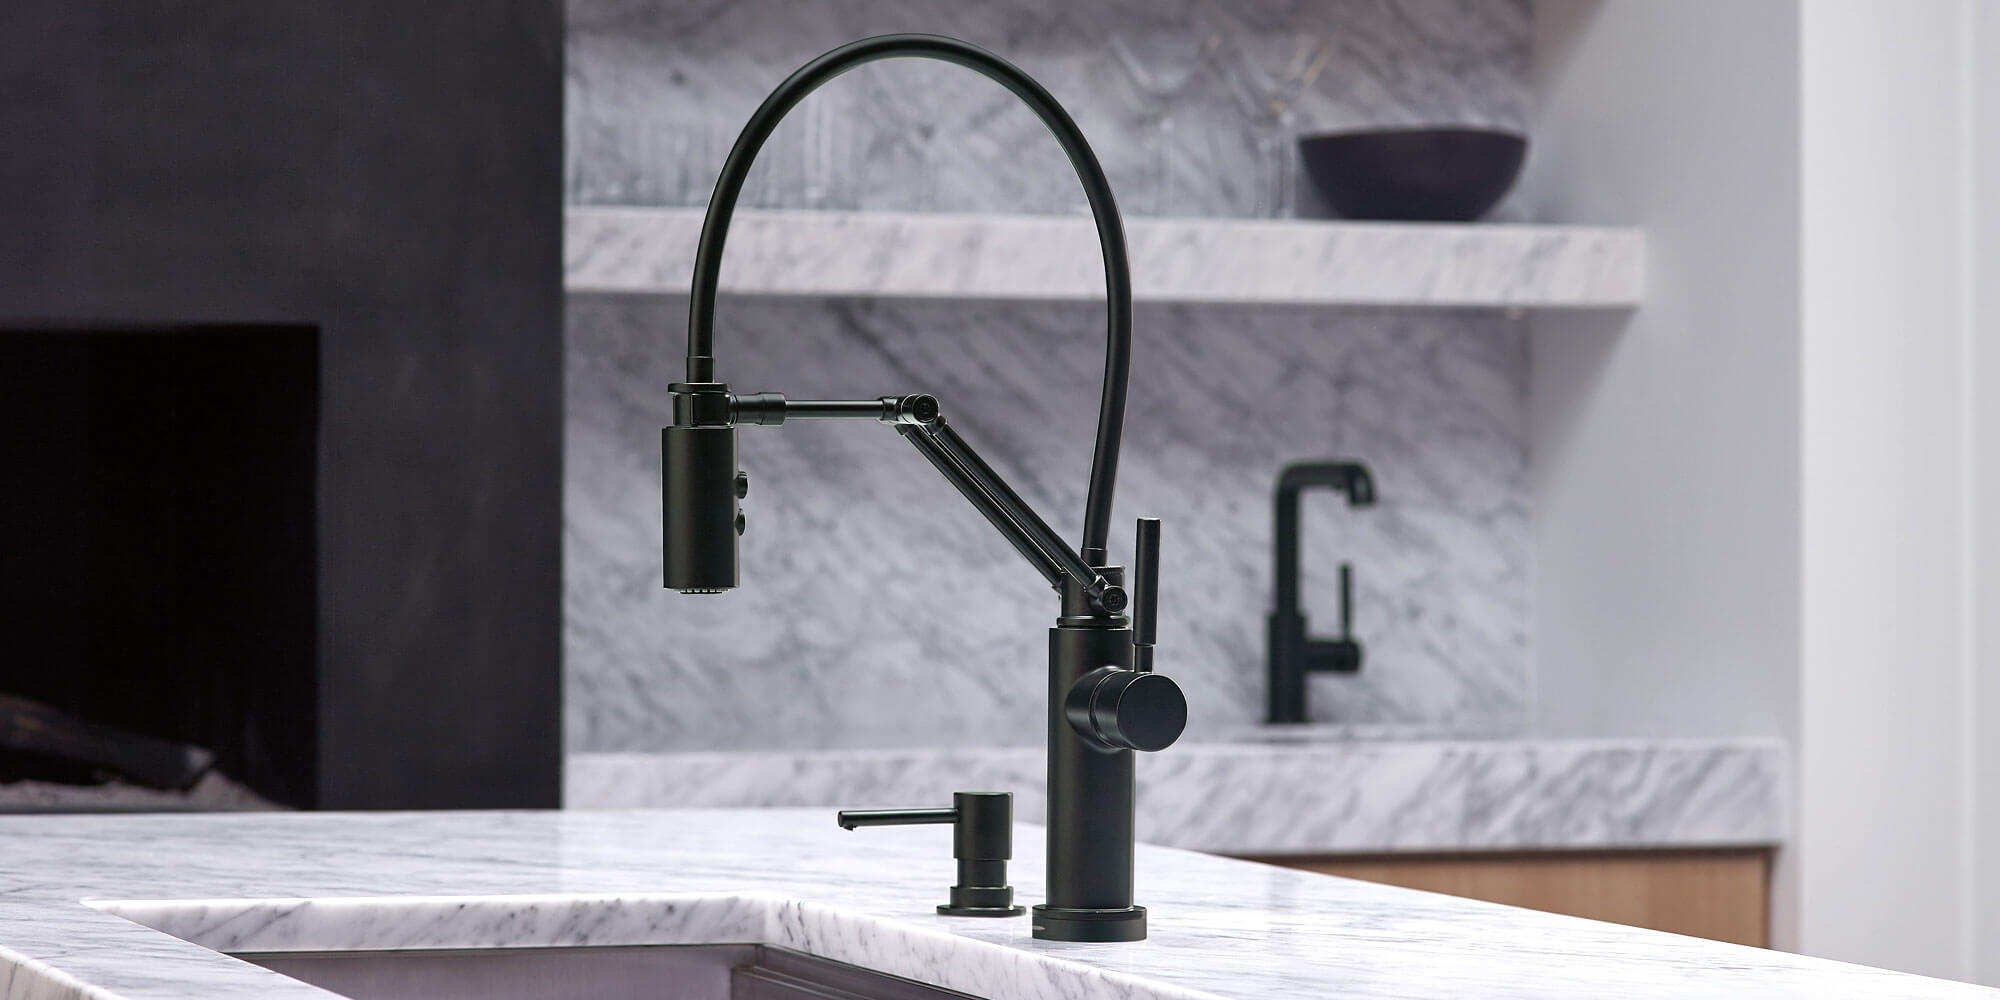 spray kitchen with pc warranty com nickel polished tresa includes lifetime side pn brizo faucet brilliance